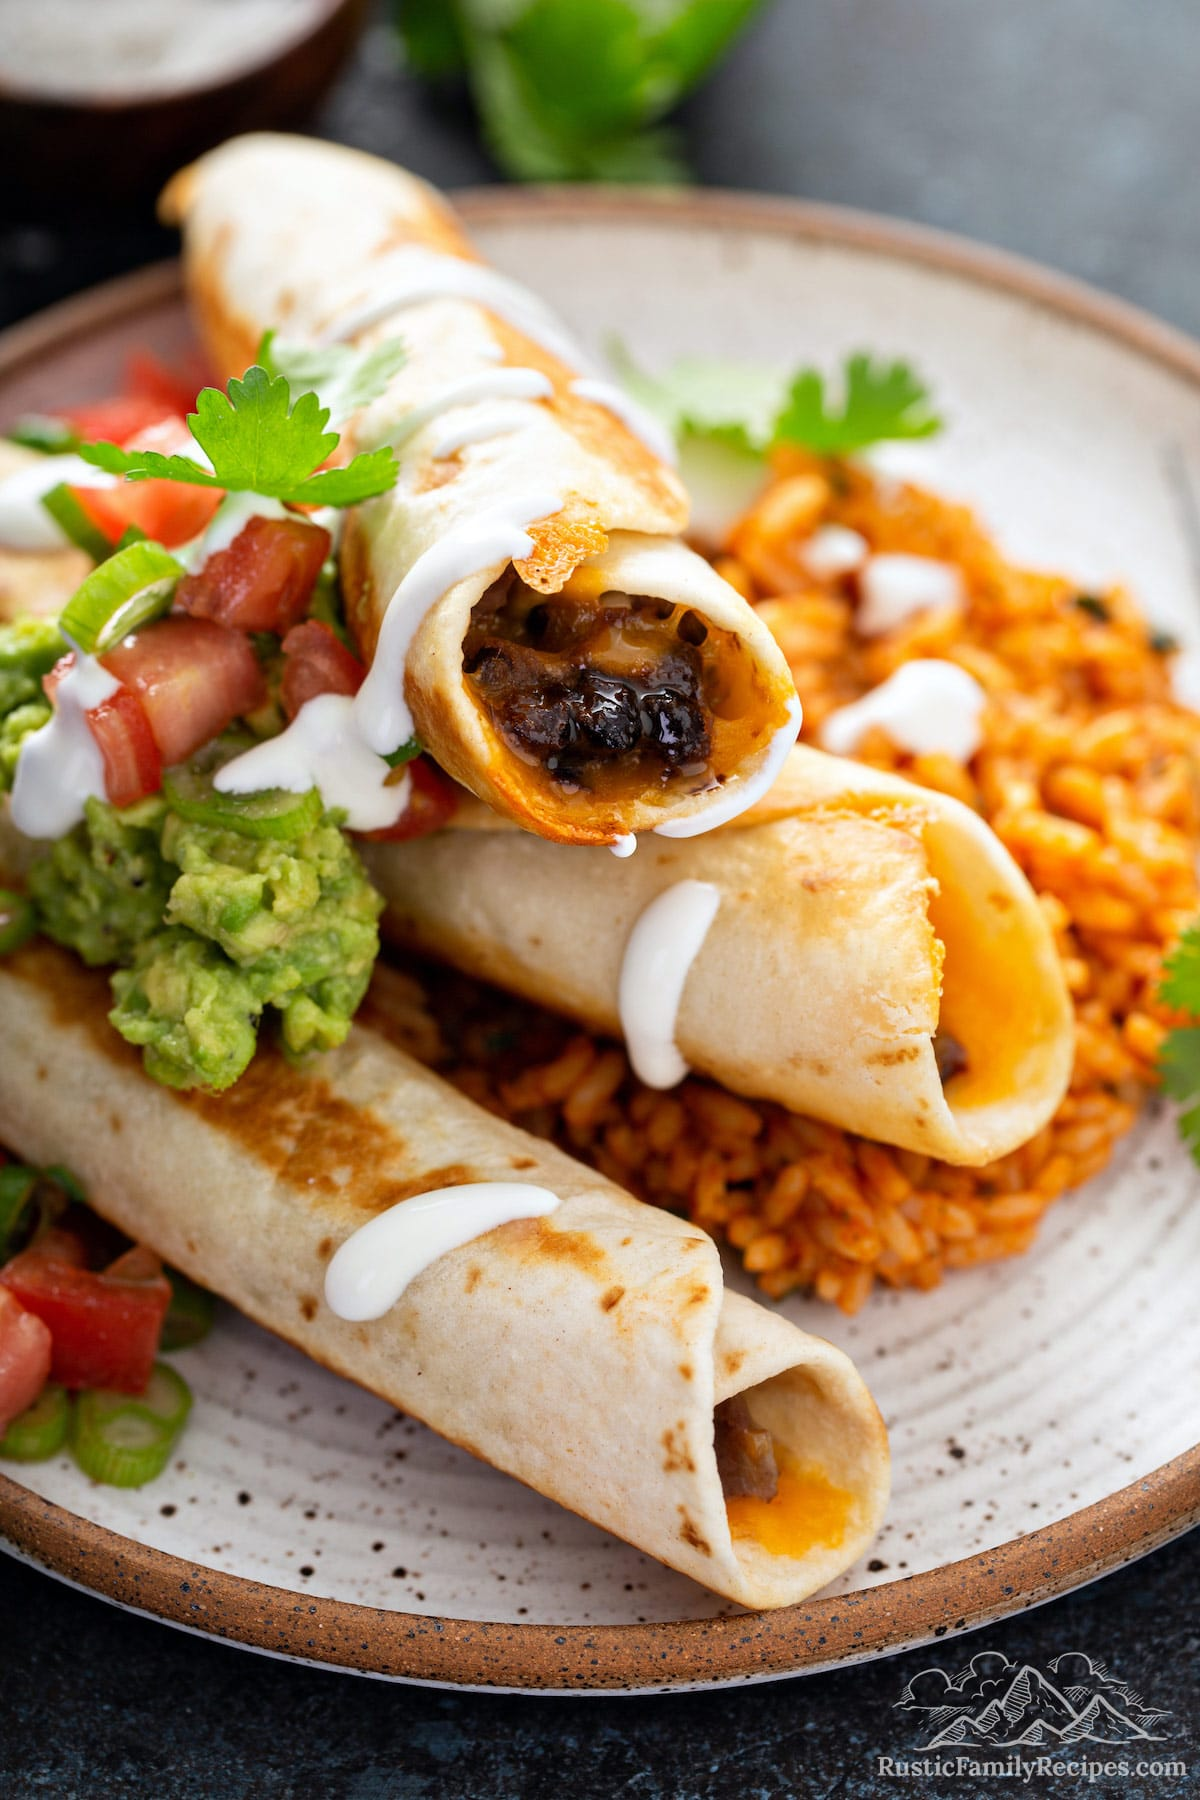 Plate of black bean flautas with Mexican rice.